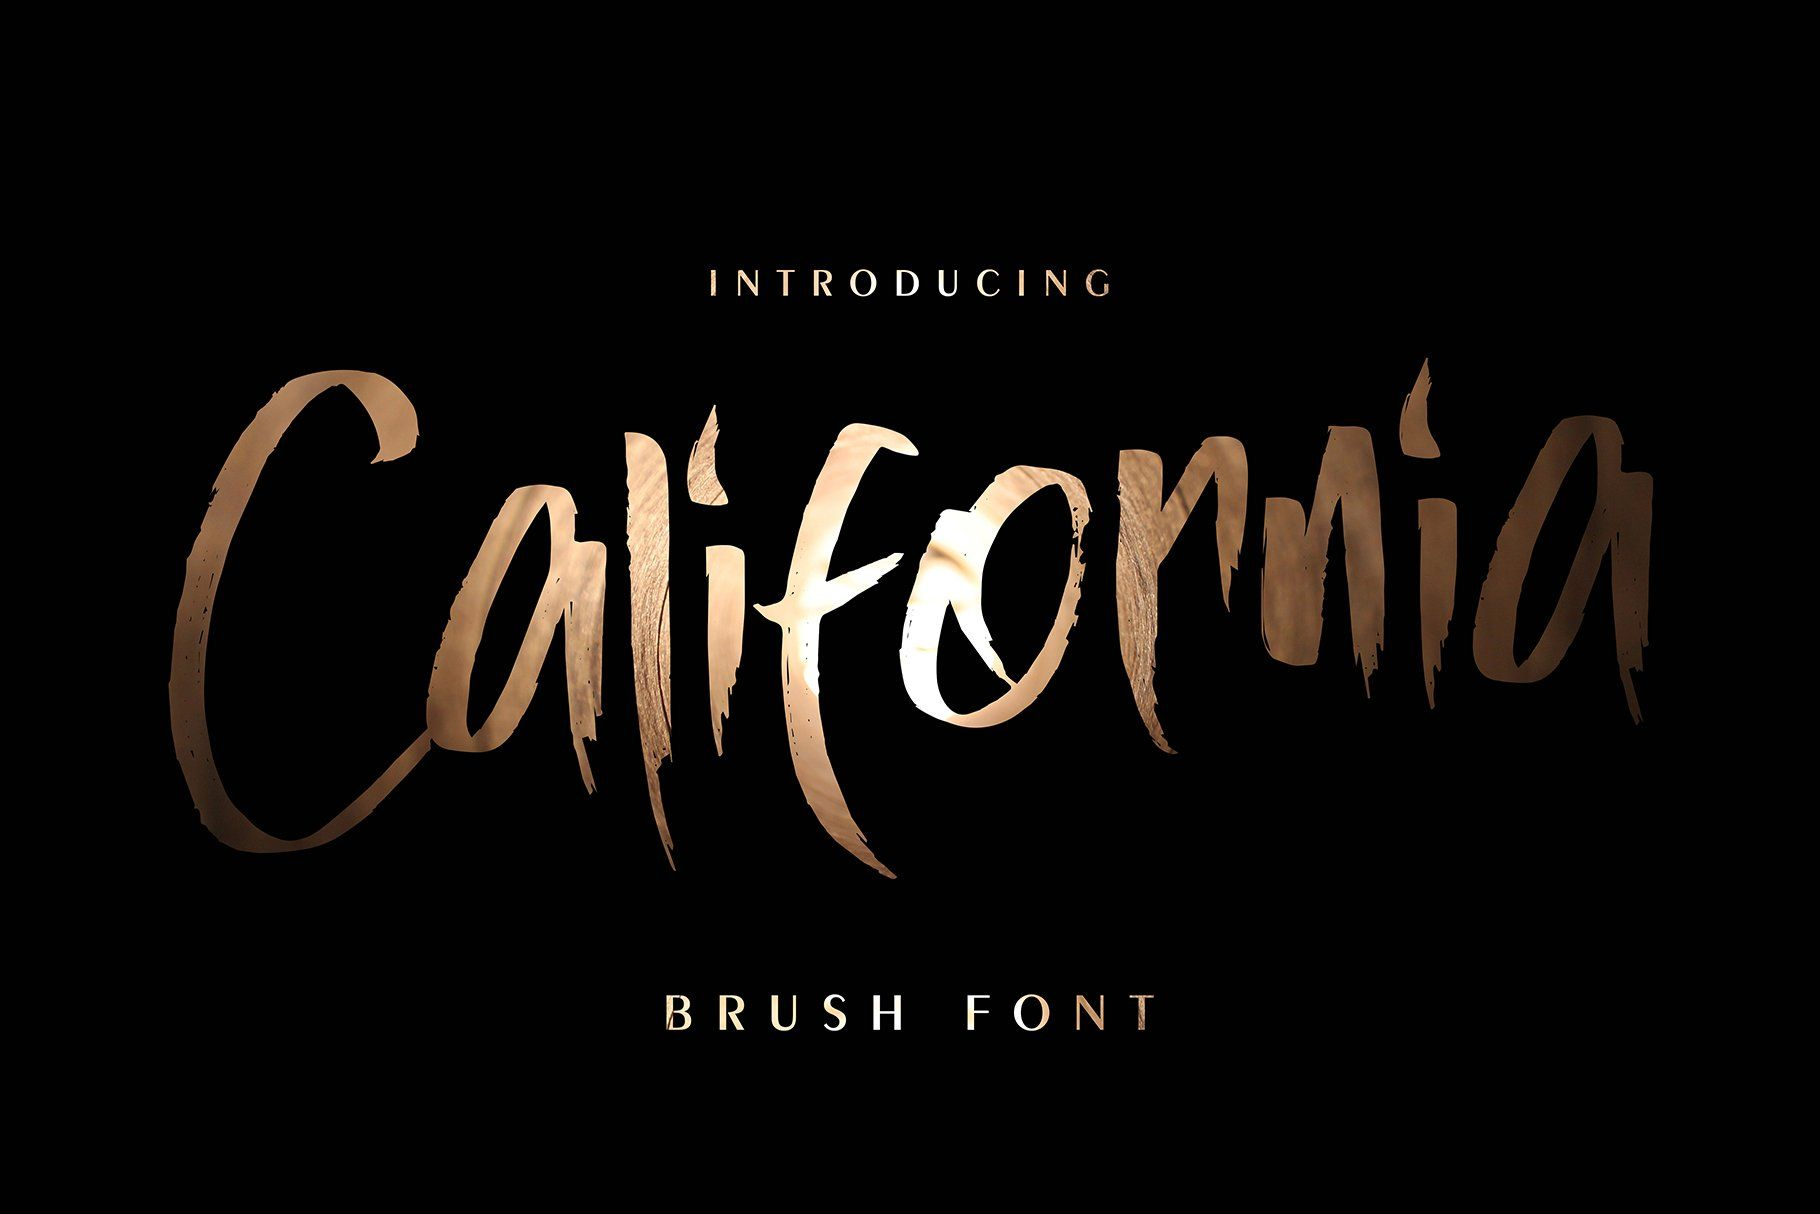 California In 2020 Brush Font Handwritten Fonts Blog Header